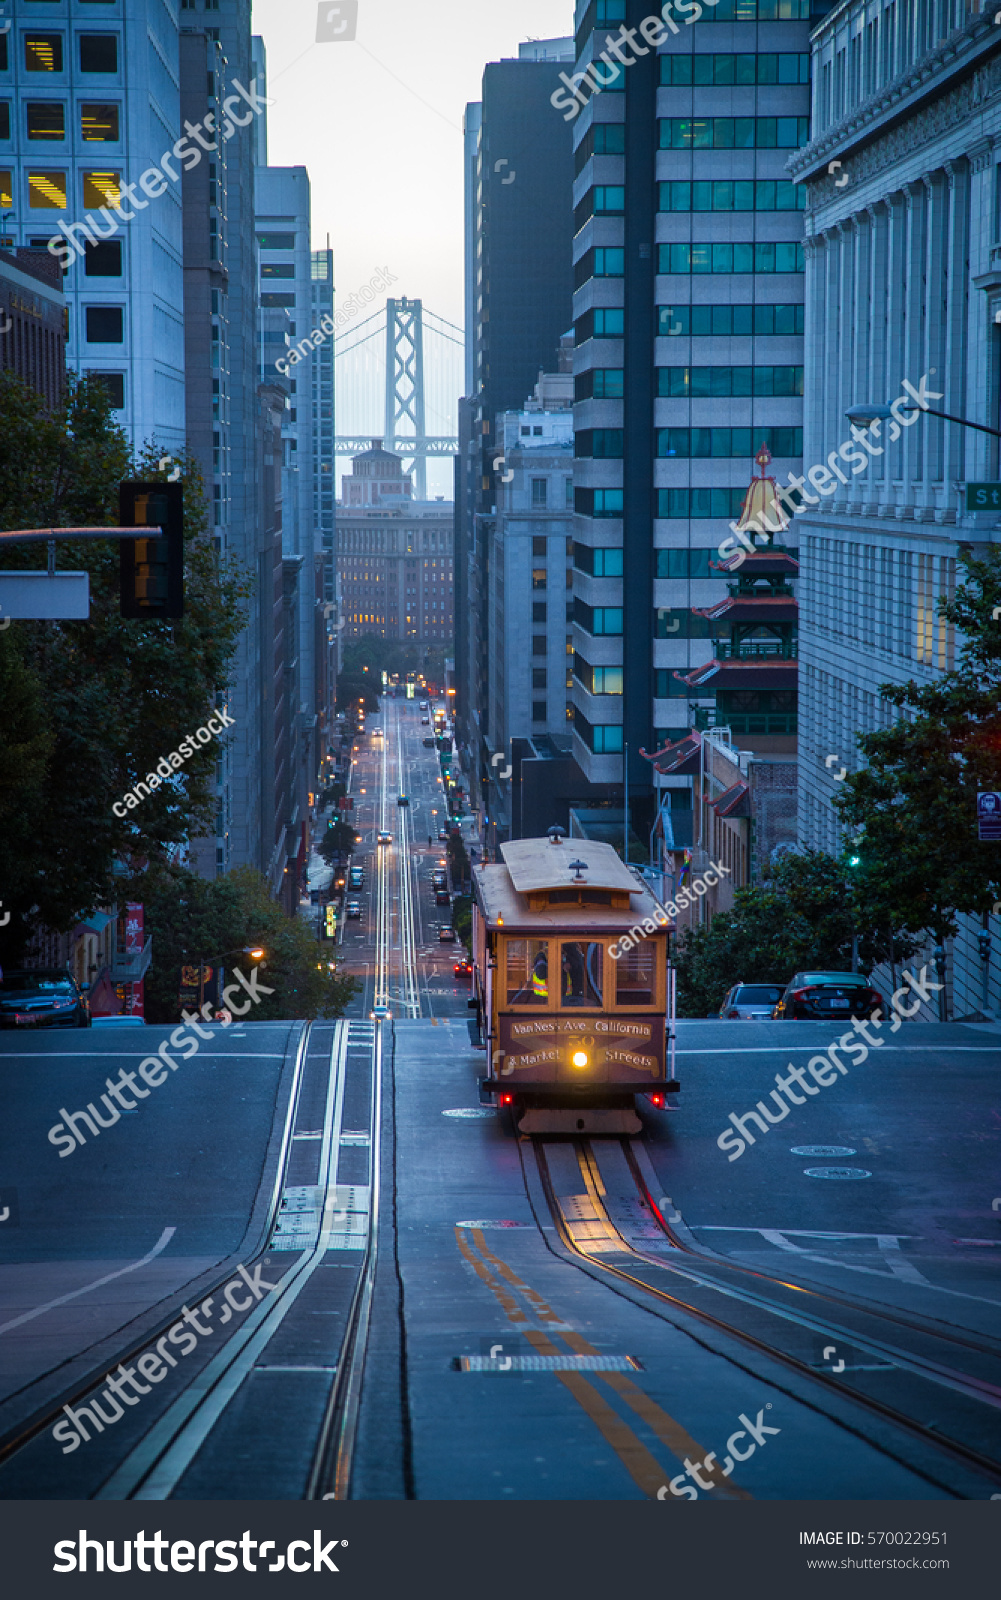 Classic Vertical View Historic Cable Car Stock Photo